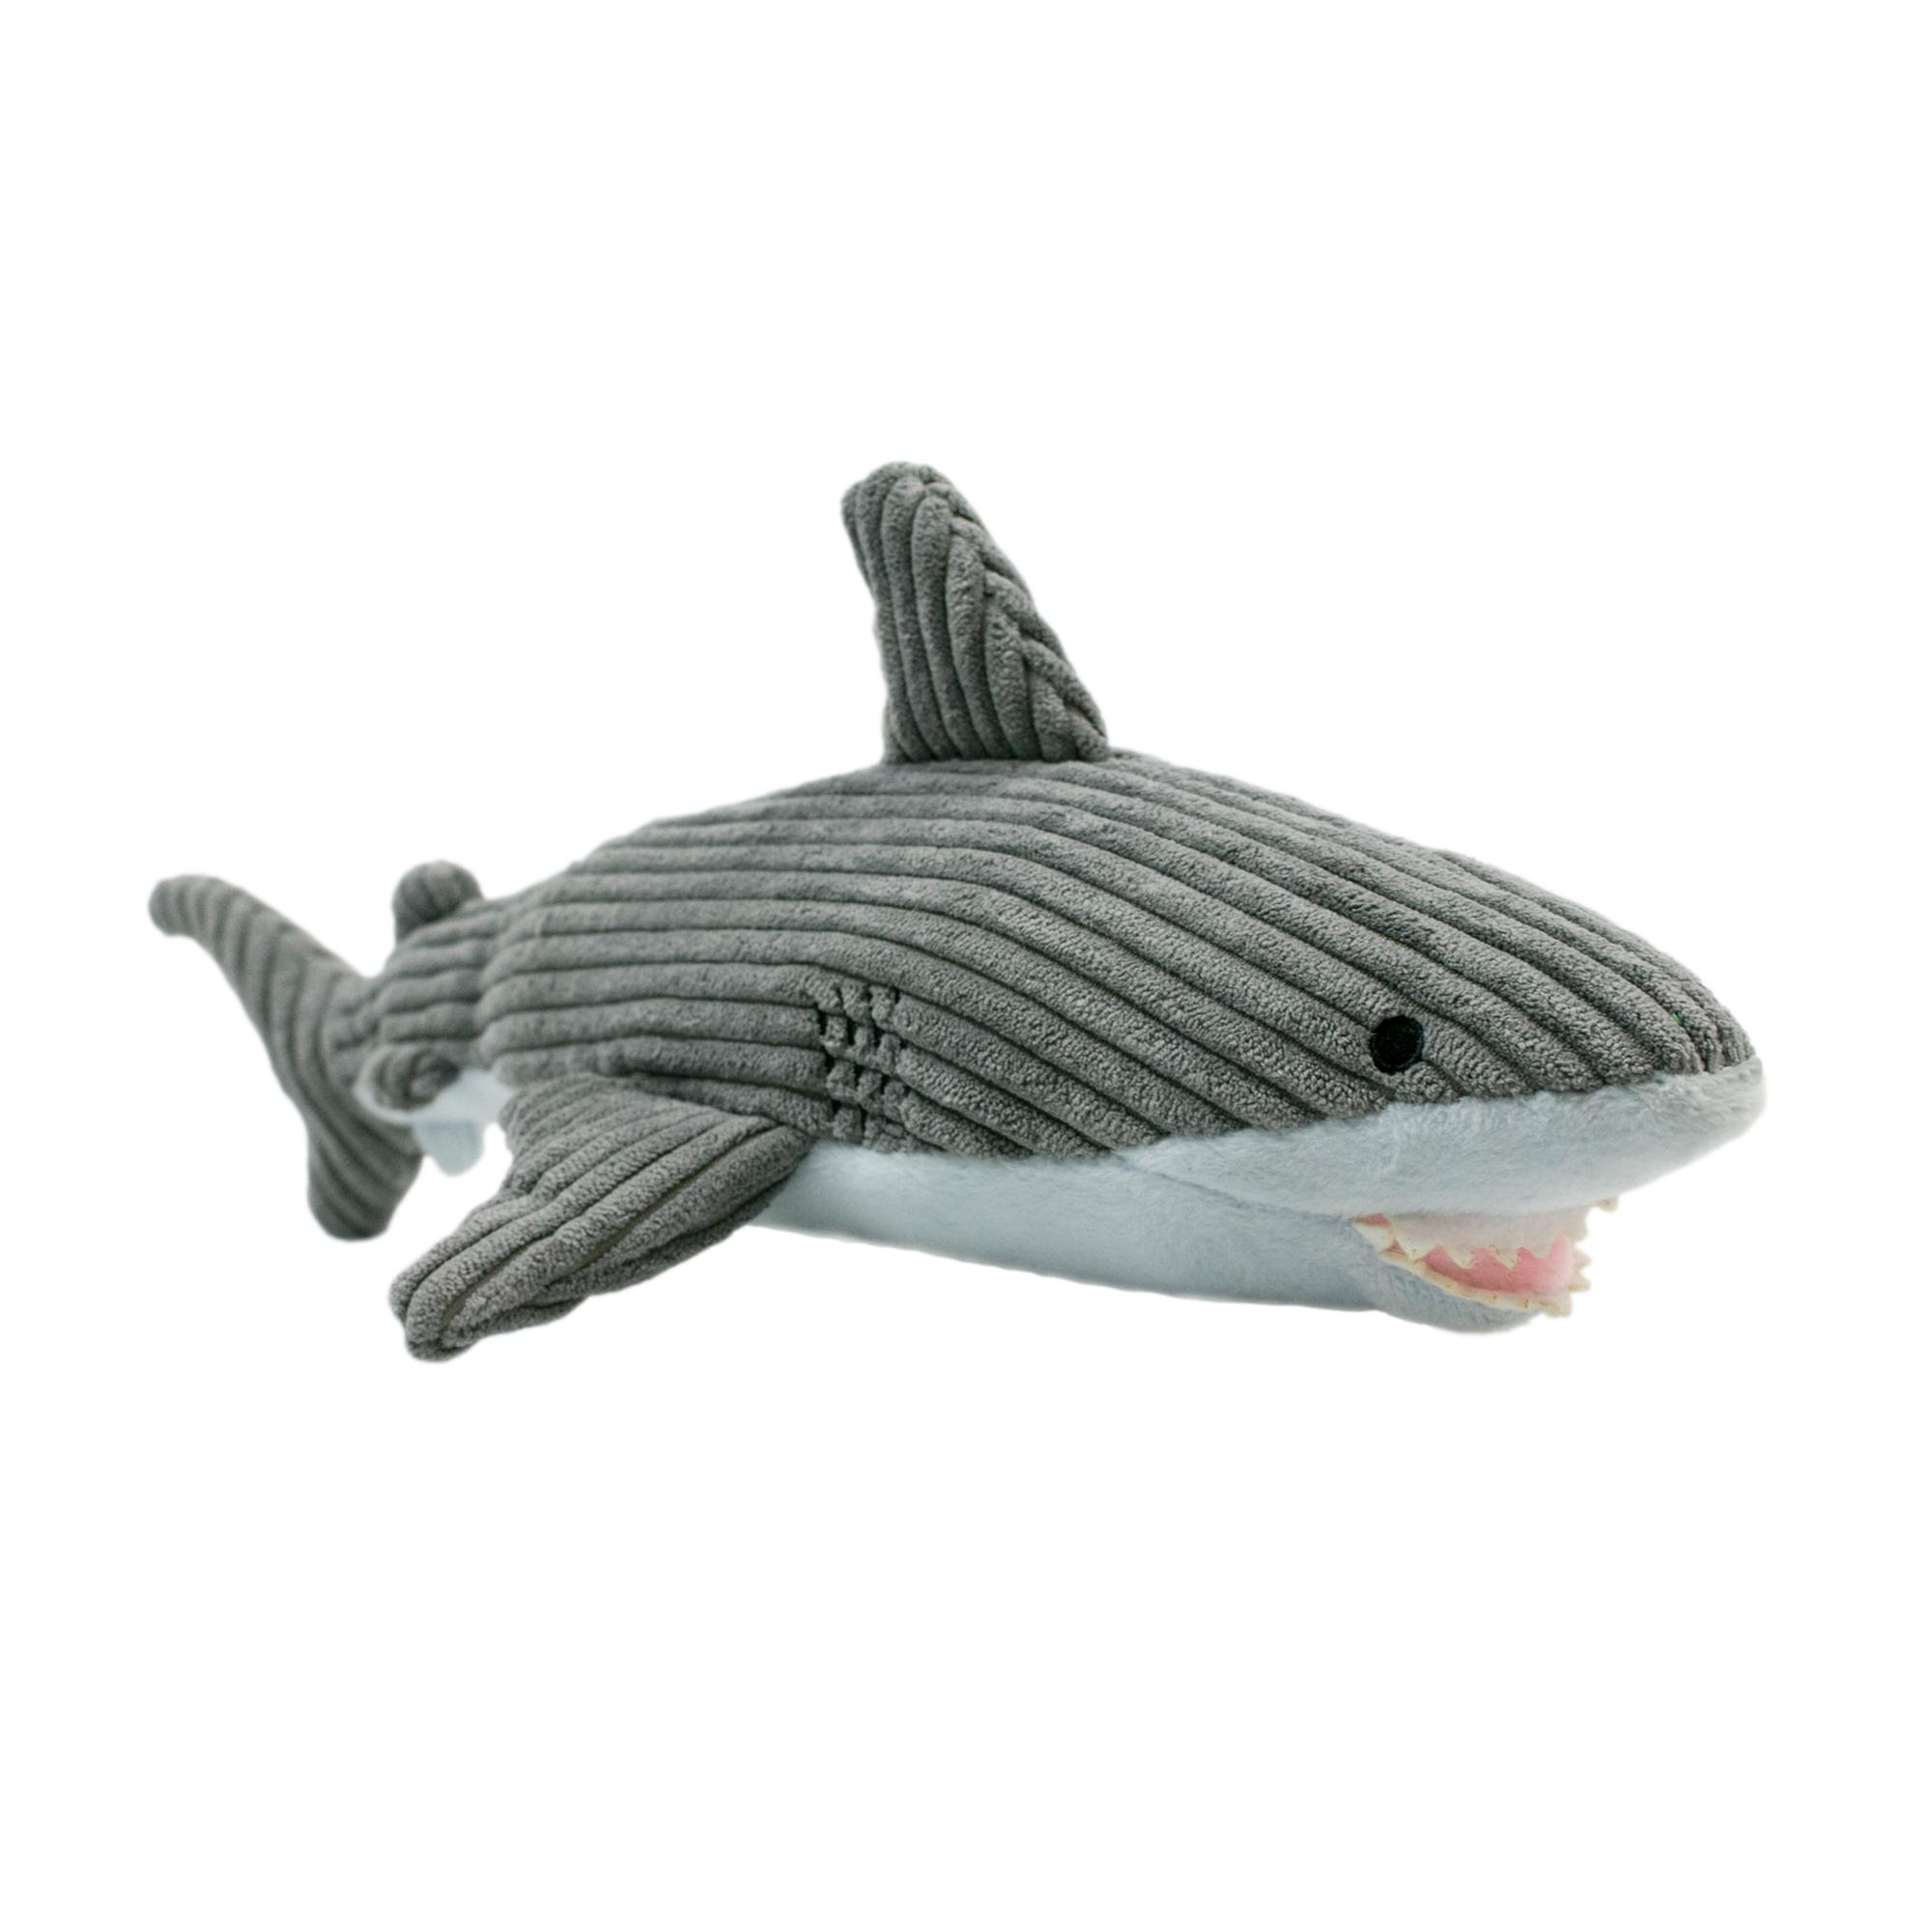 Tall Tails Crunch Shark Dog Toy, 12-in. (Size: 12-in.) Image